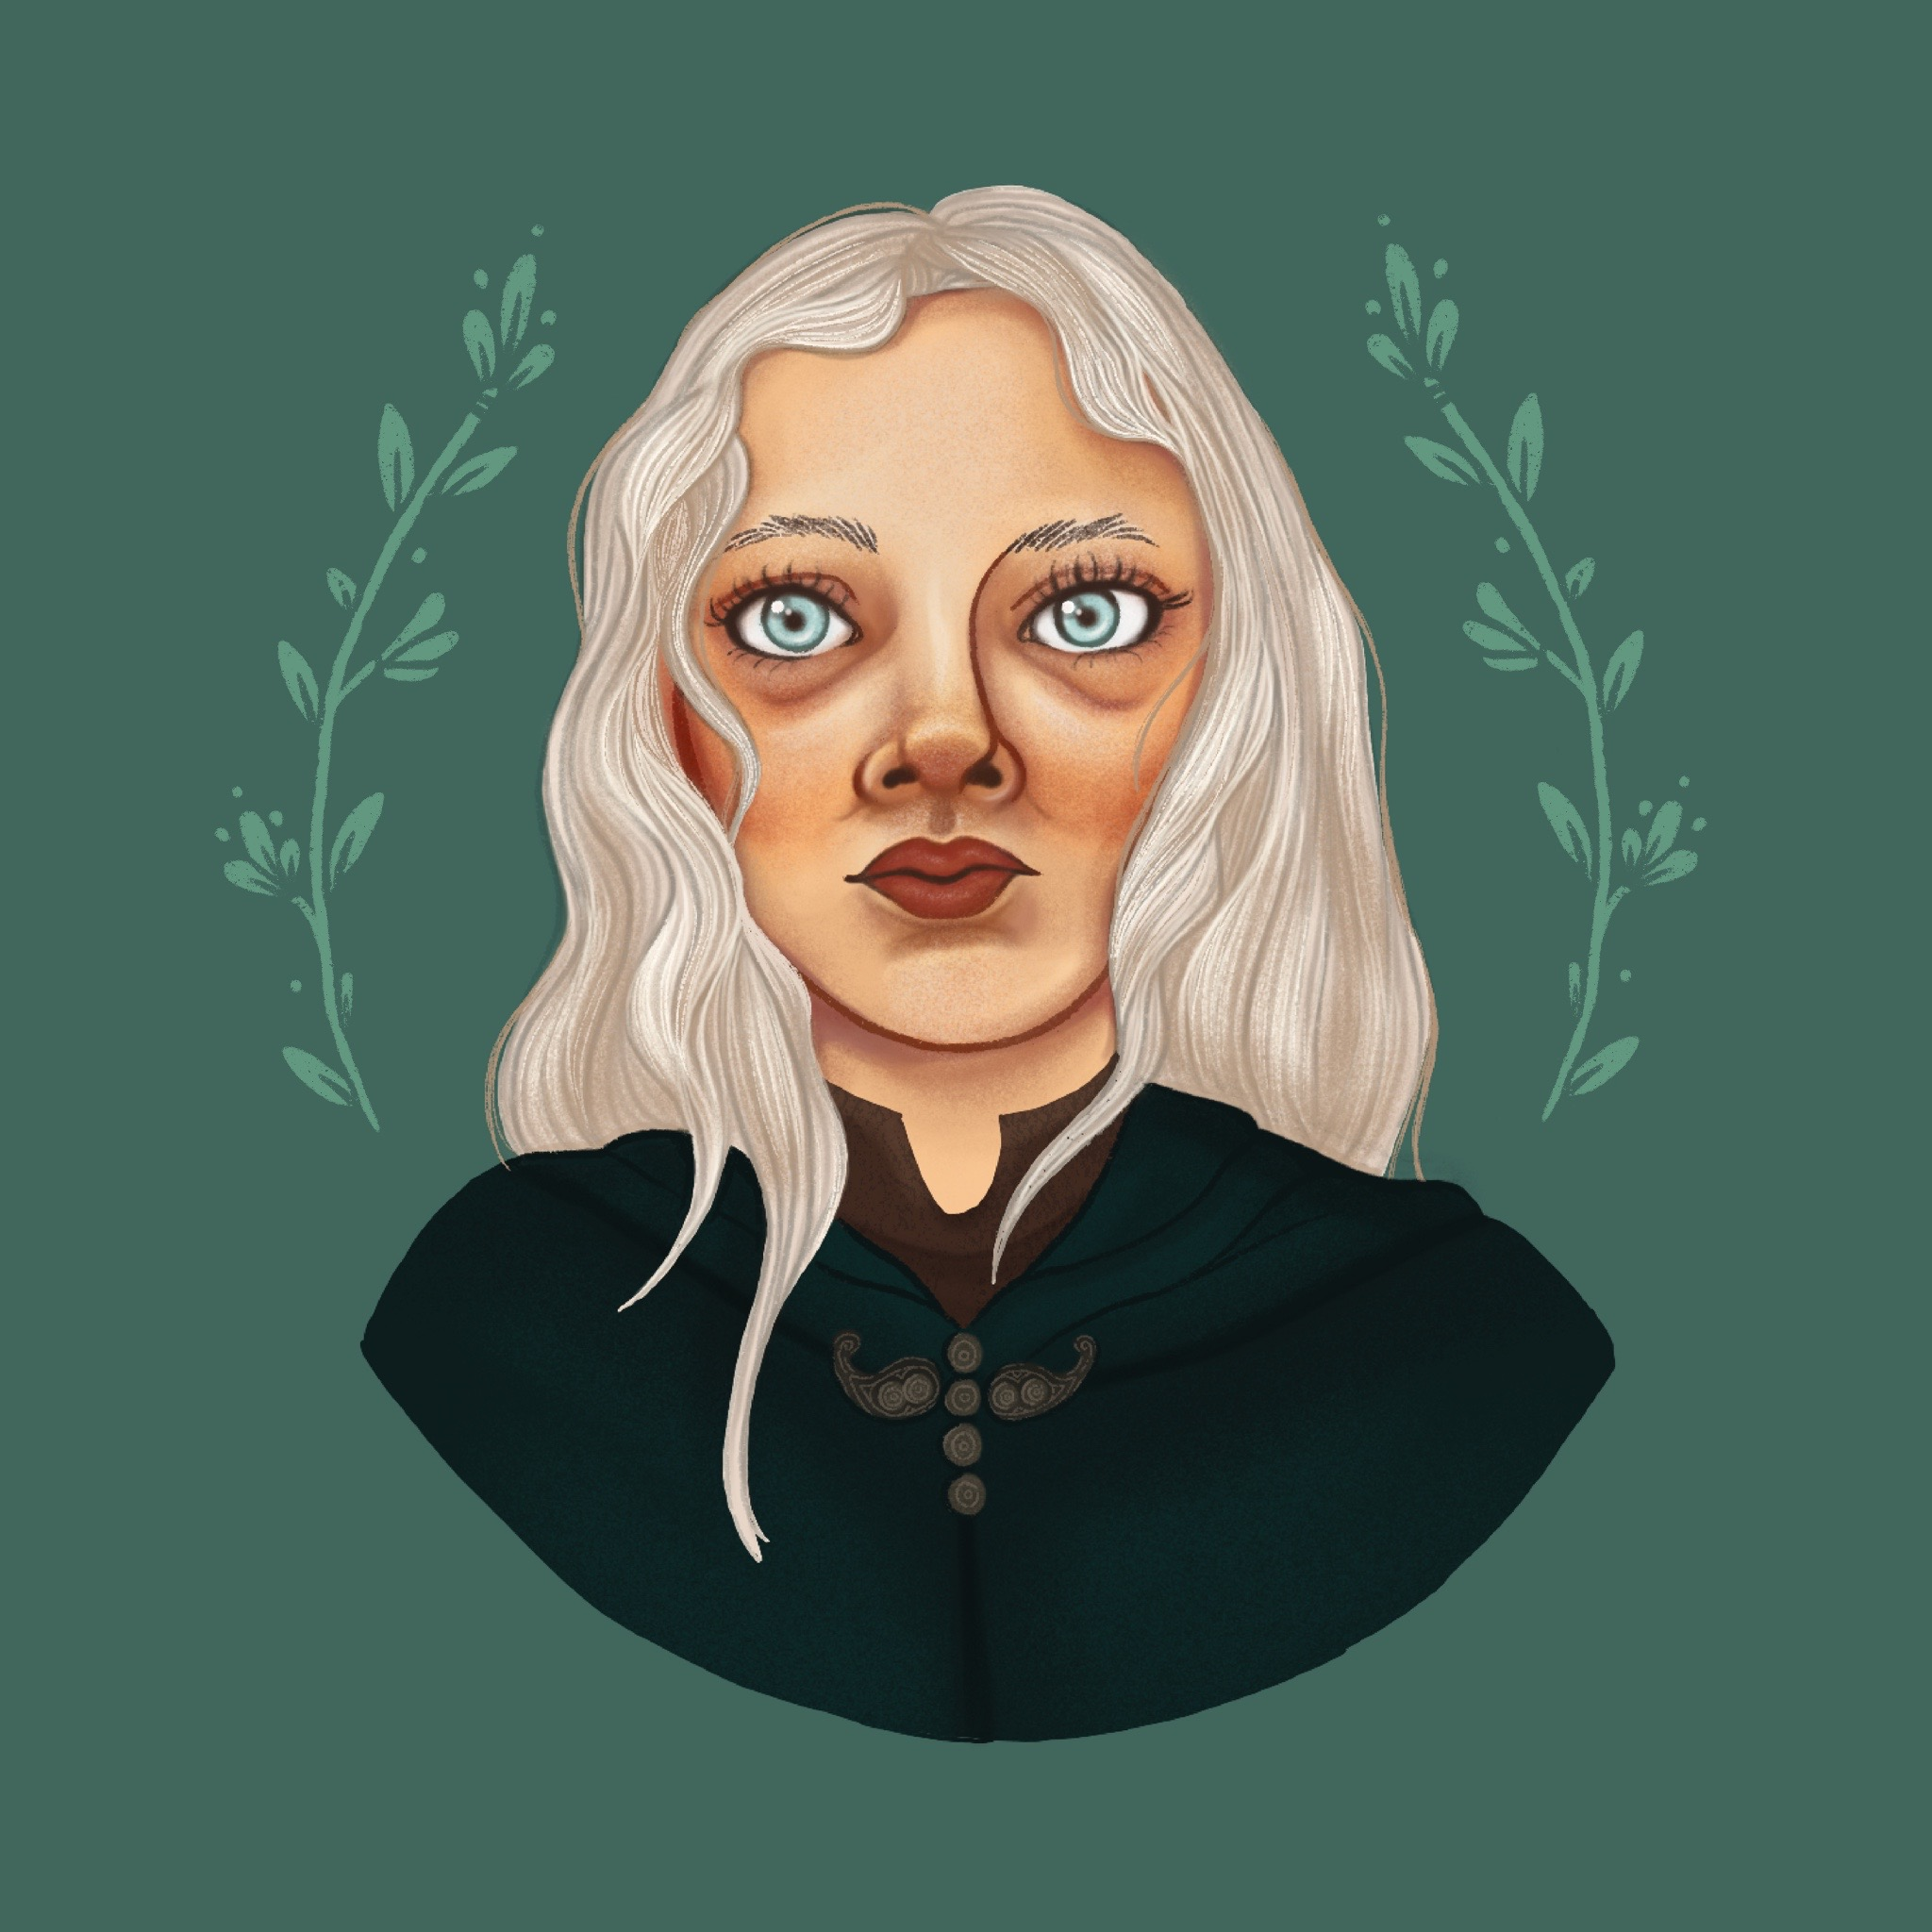 An illustration / portrait of Ciri from The WItcher on Netflix.